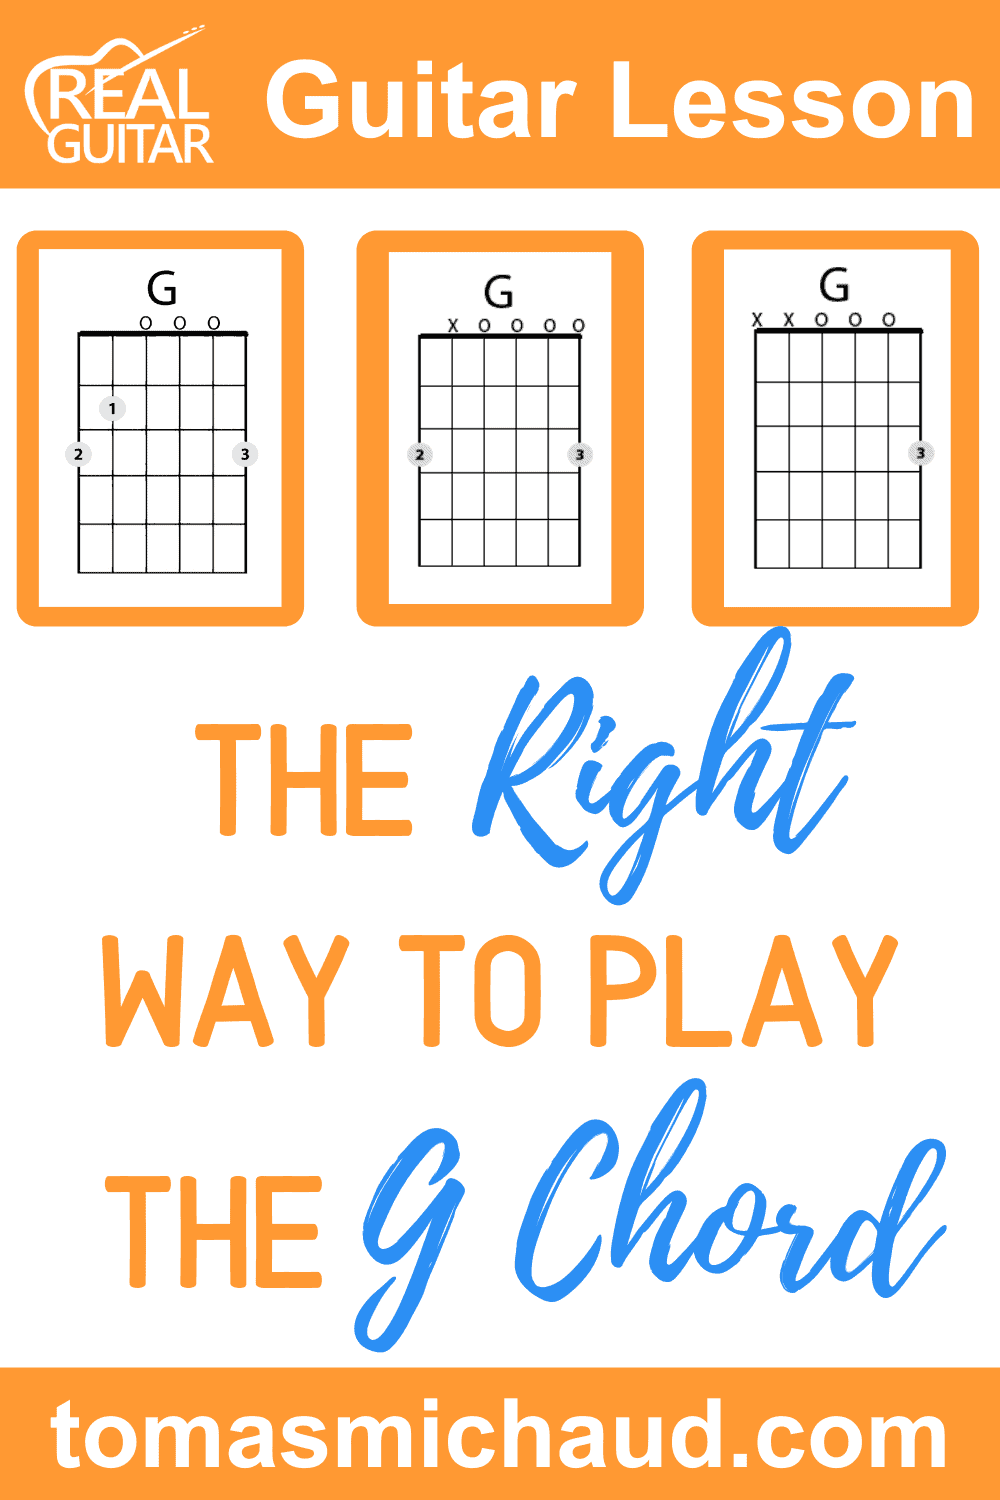 THE RIGHT WAY TO PLAY THE G CHORD